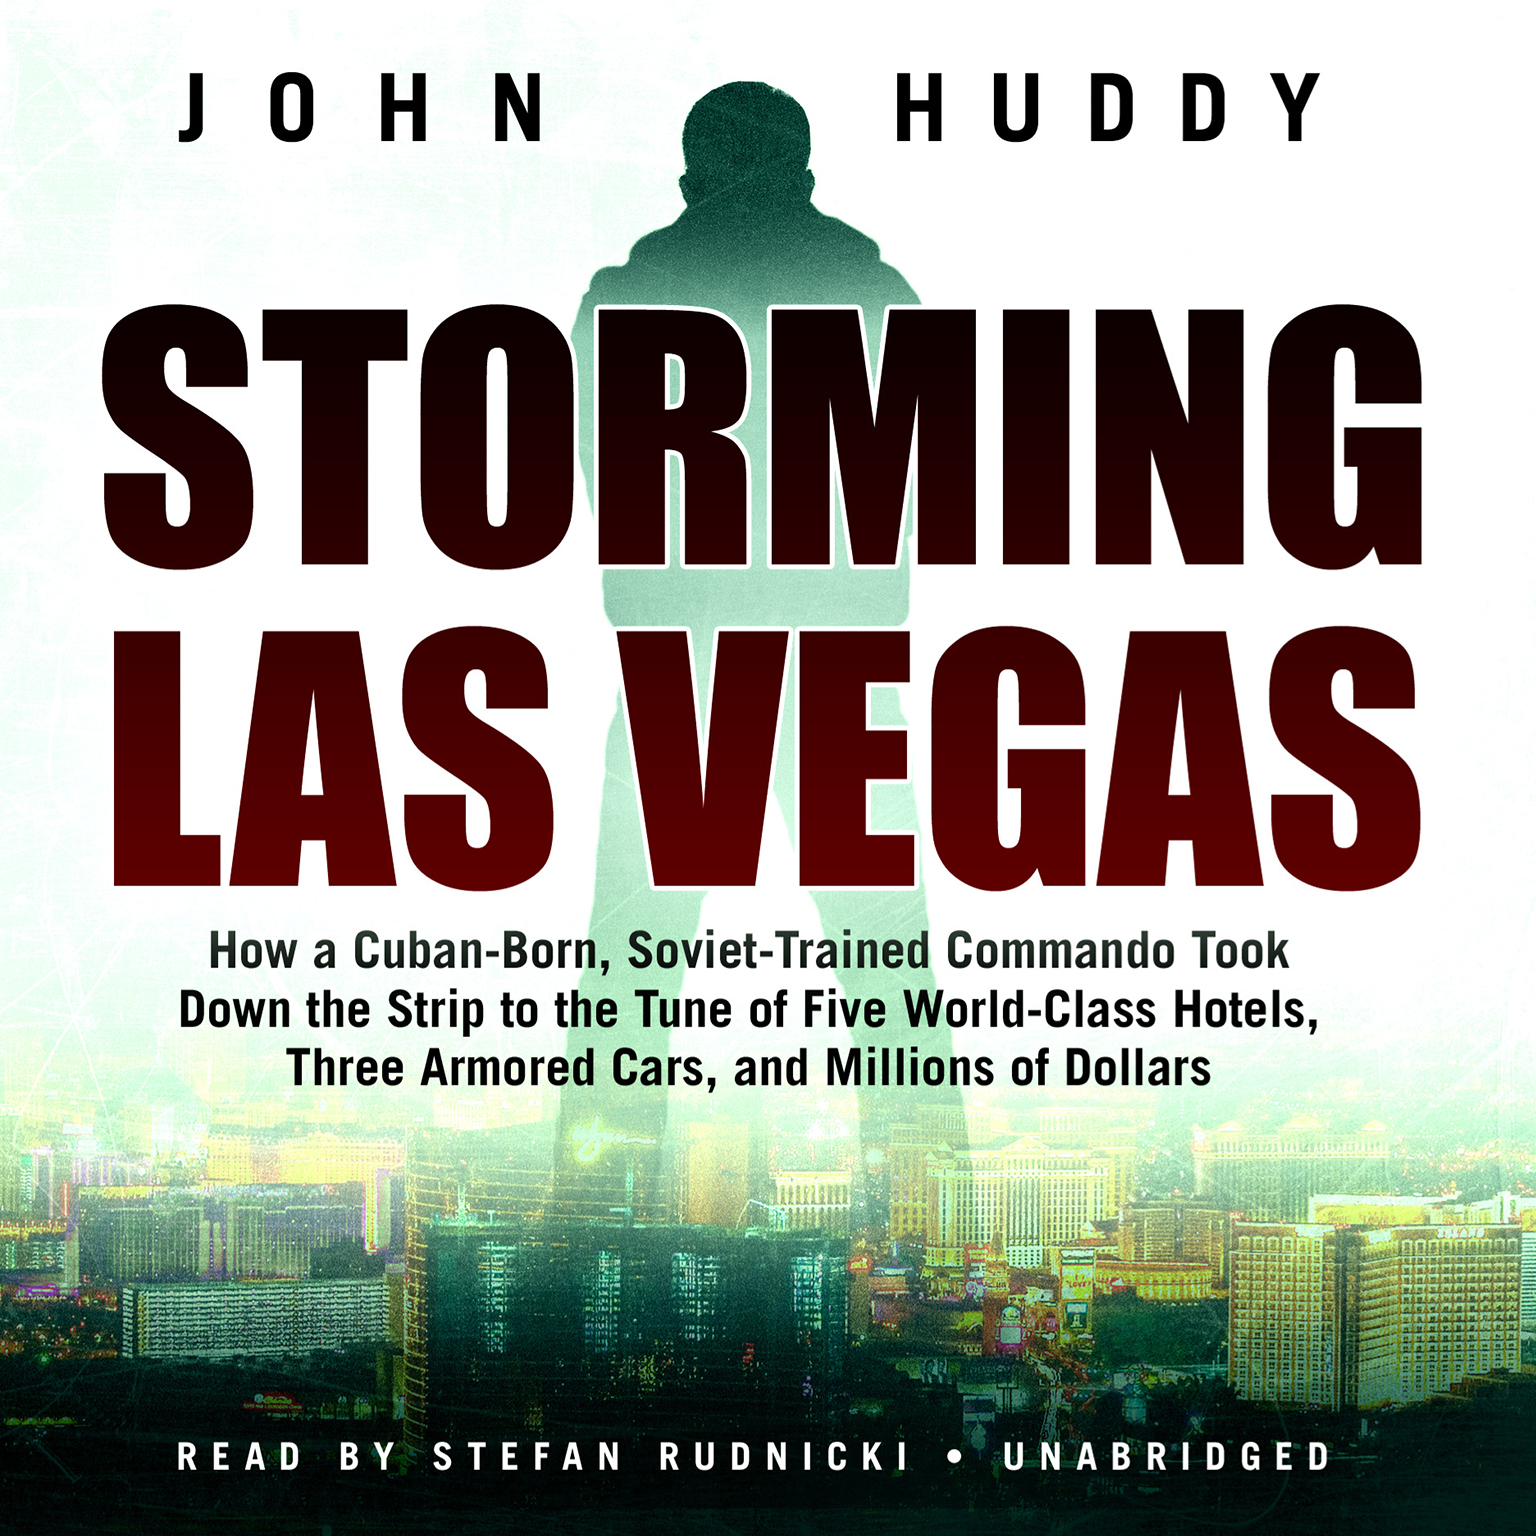 Printable Storming Las Vegas: How a Cuban-Born, Soviet-Trained Commando Took Down the Strip to the Tune of Five World-Class Hotels, Three Armored Cars, and Millions of Dollars Audiobook Cover Art